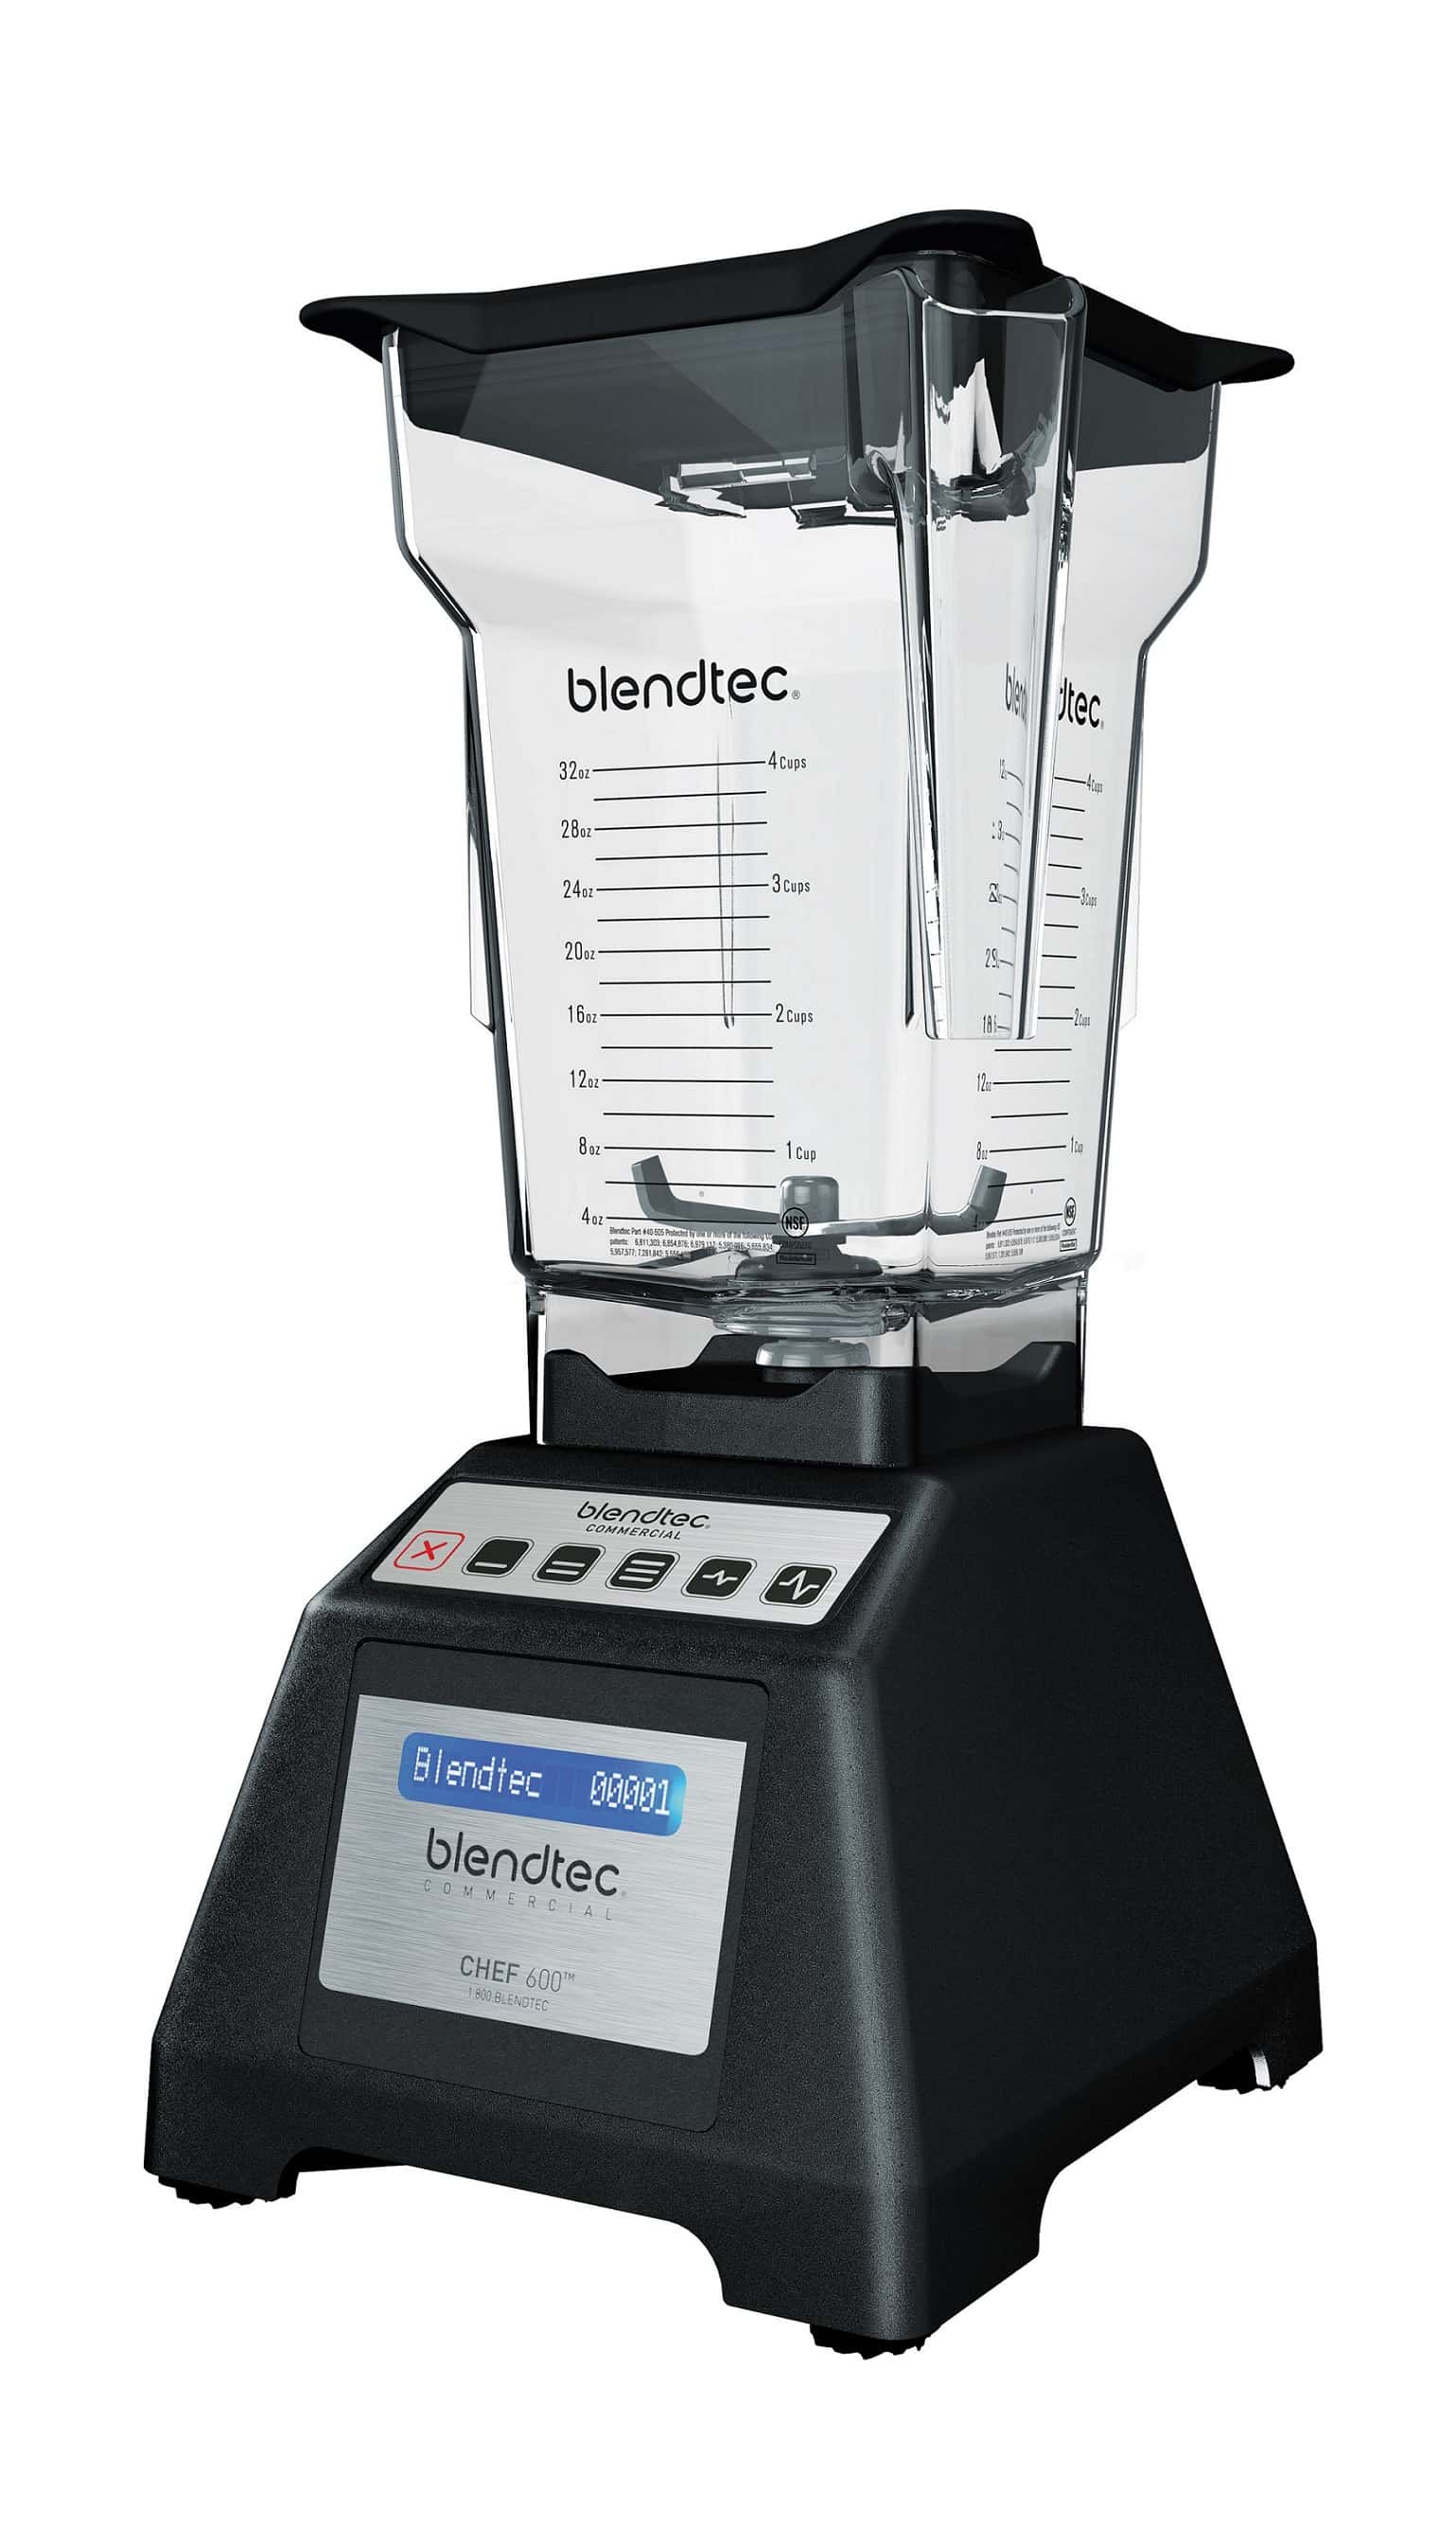 Blendtec Chef600 Image